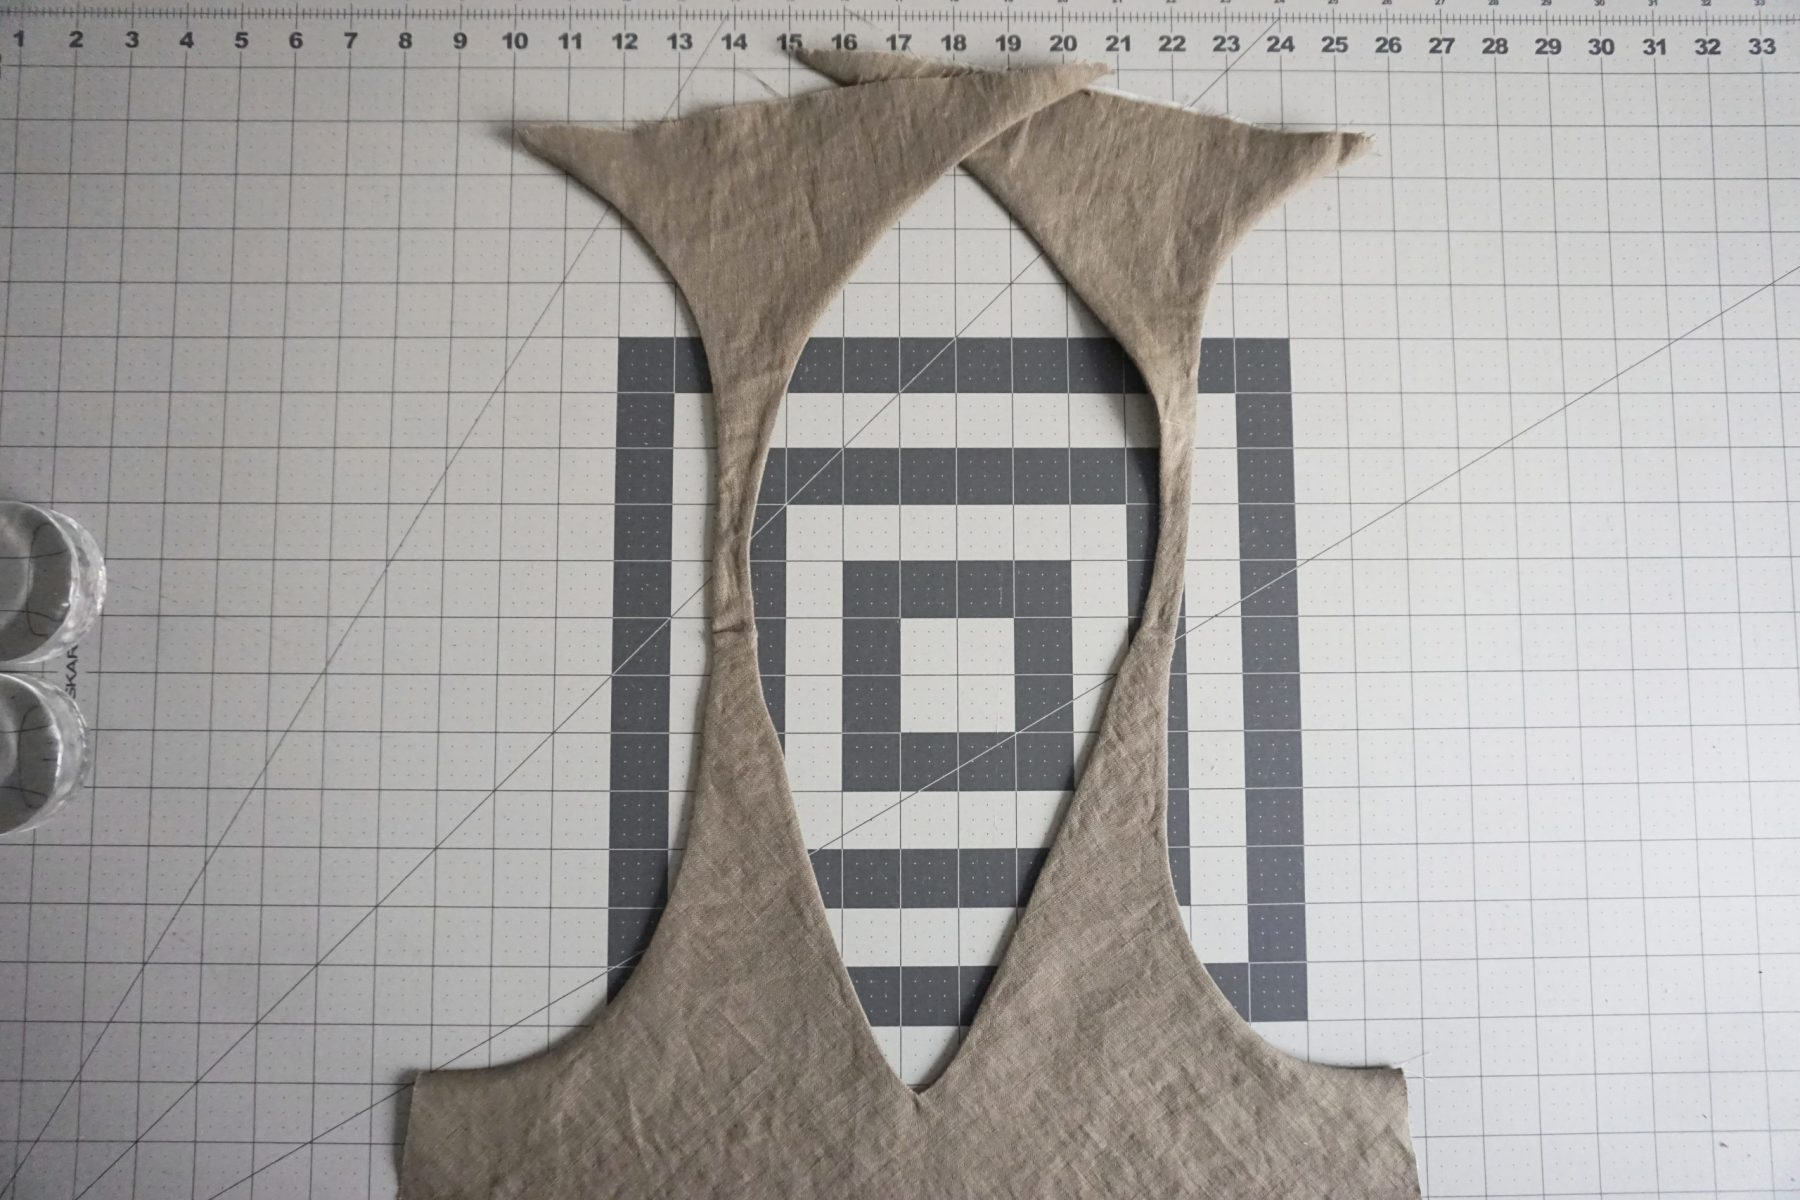 Turn the camisole front right side out